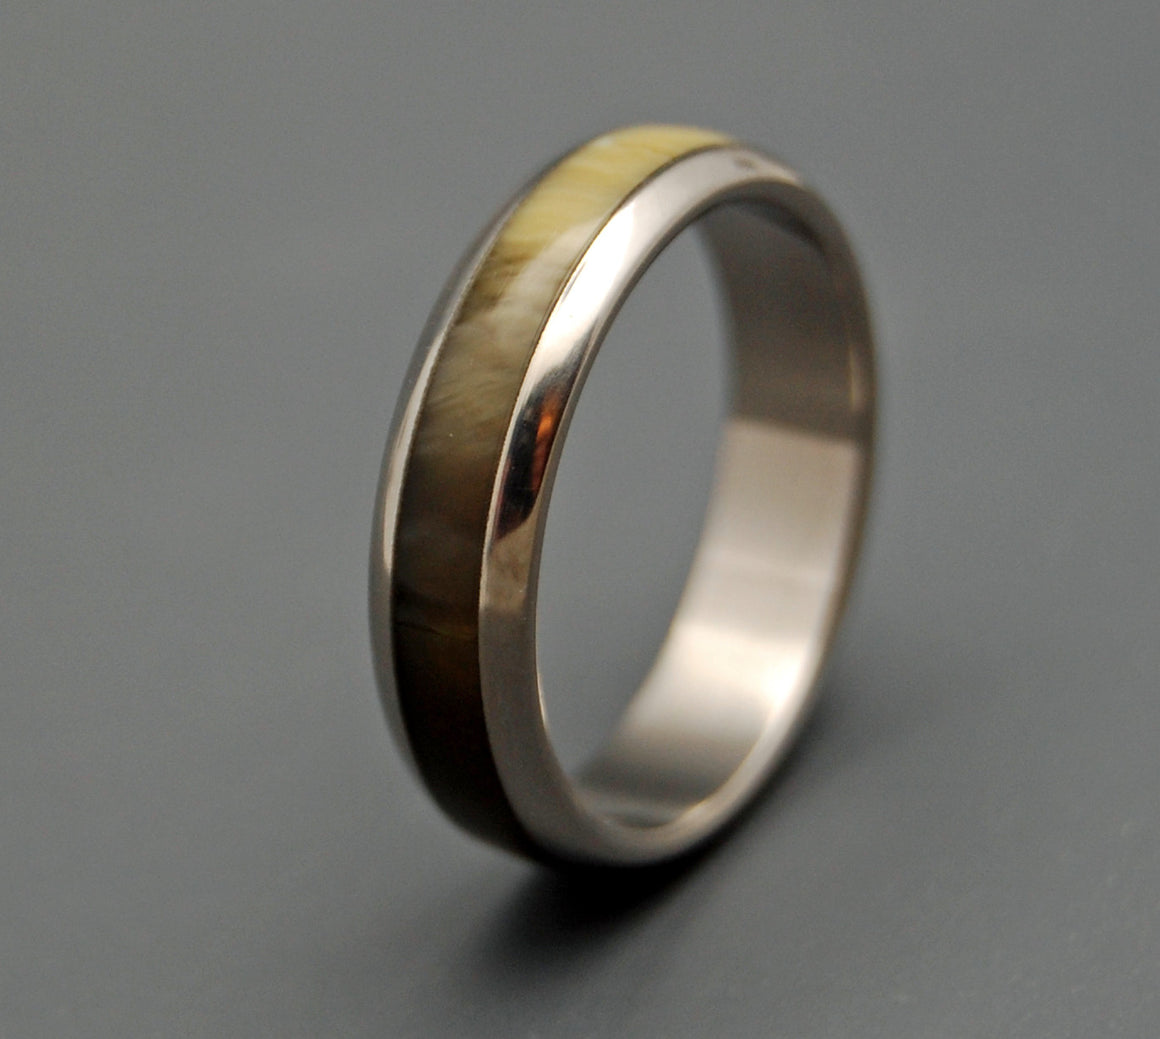 Palomino | Horn and Titanium Wedding Ring - Minter and Richter Designs